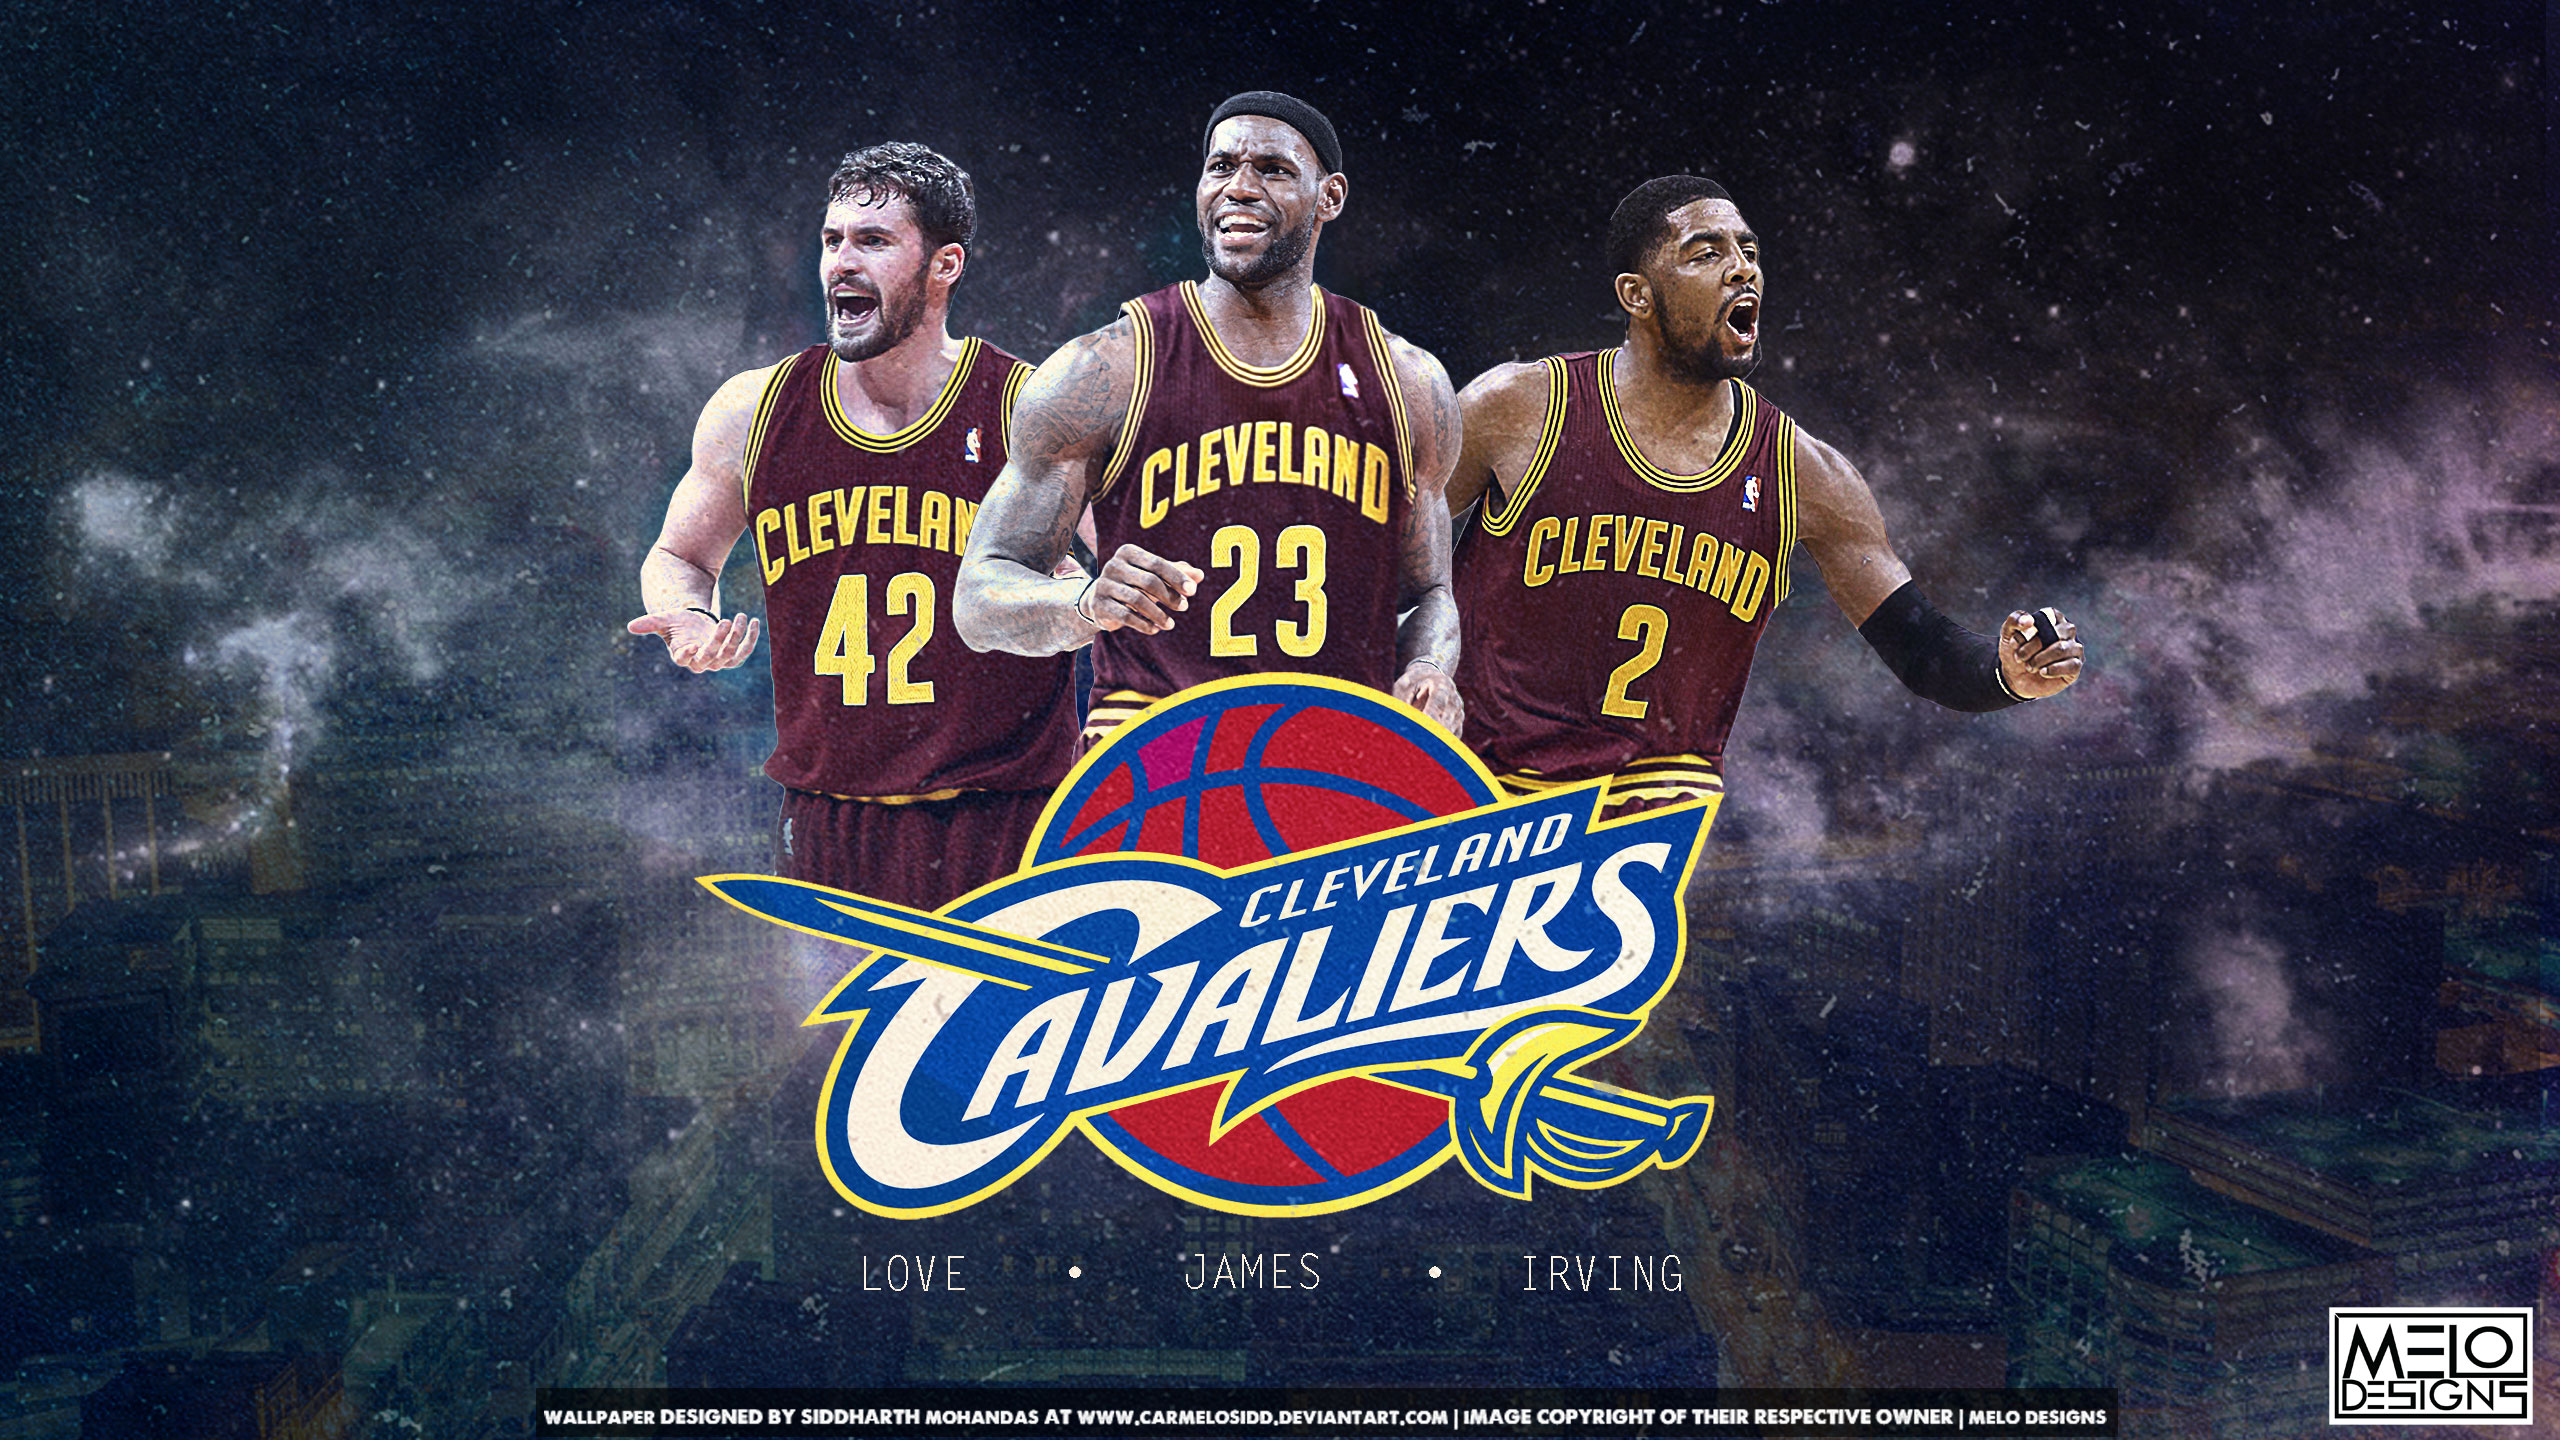 Love James Irving Cavaliers 2014 Wallpaper